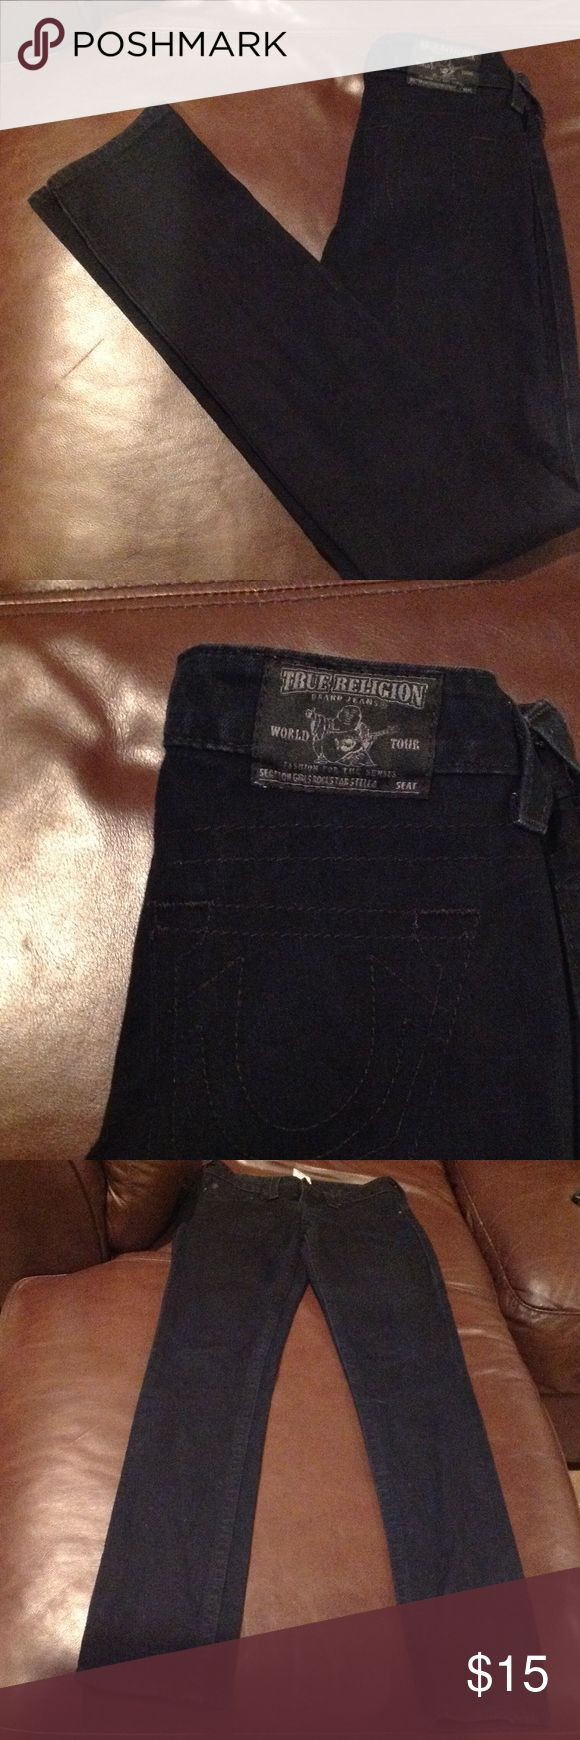 True religion Jeans True religion jeans size 14 navy blue. Great condition True Religion Jeans Boot Cut